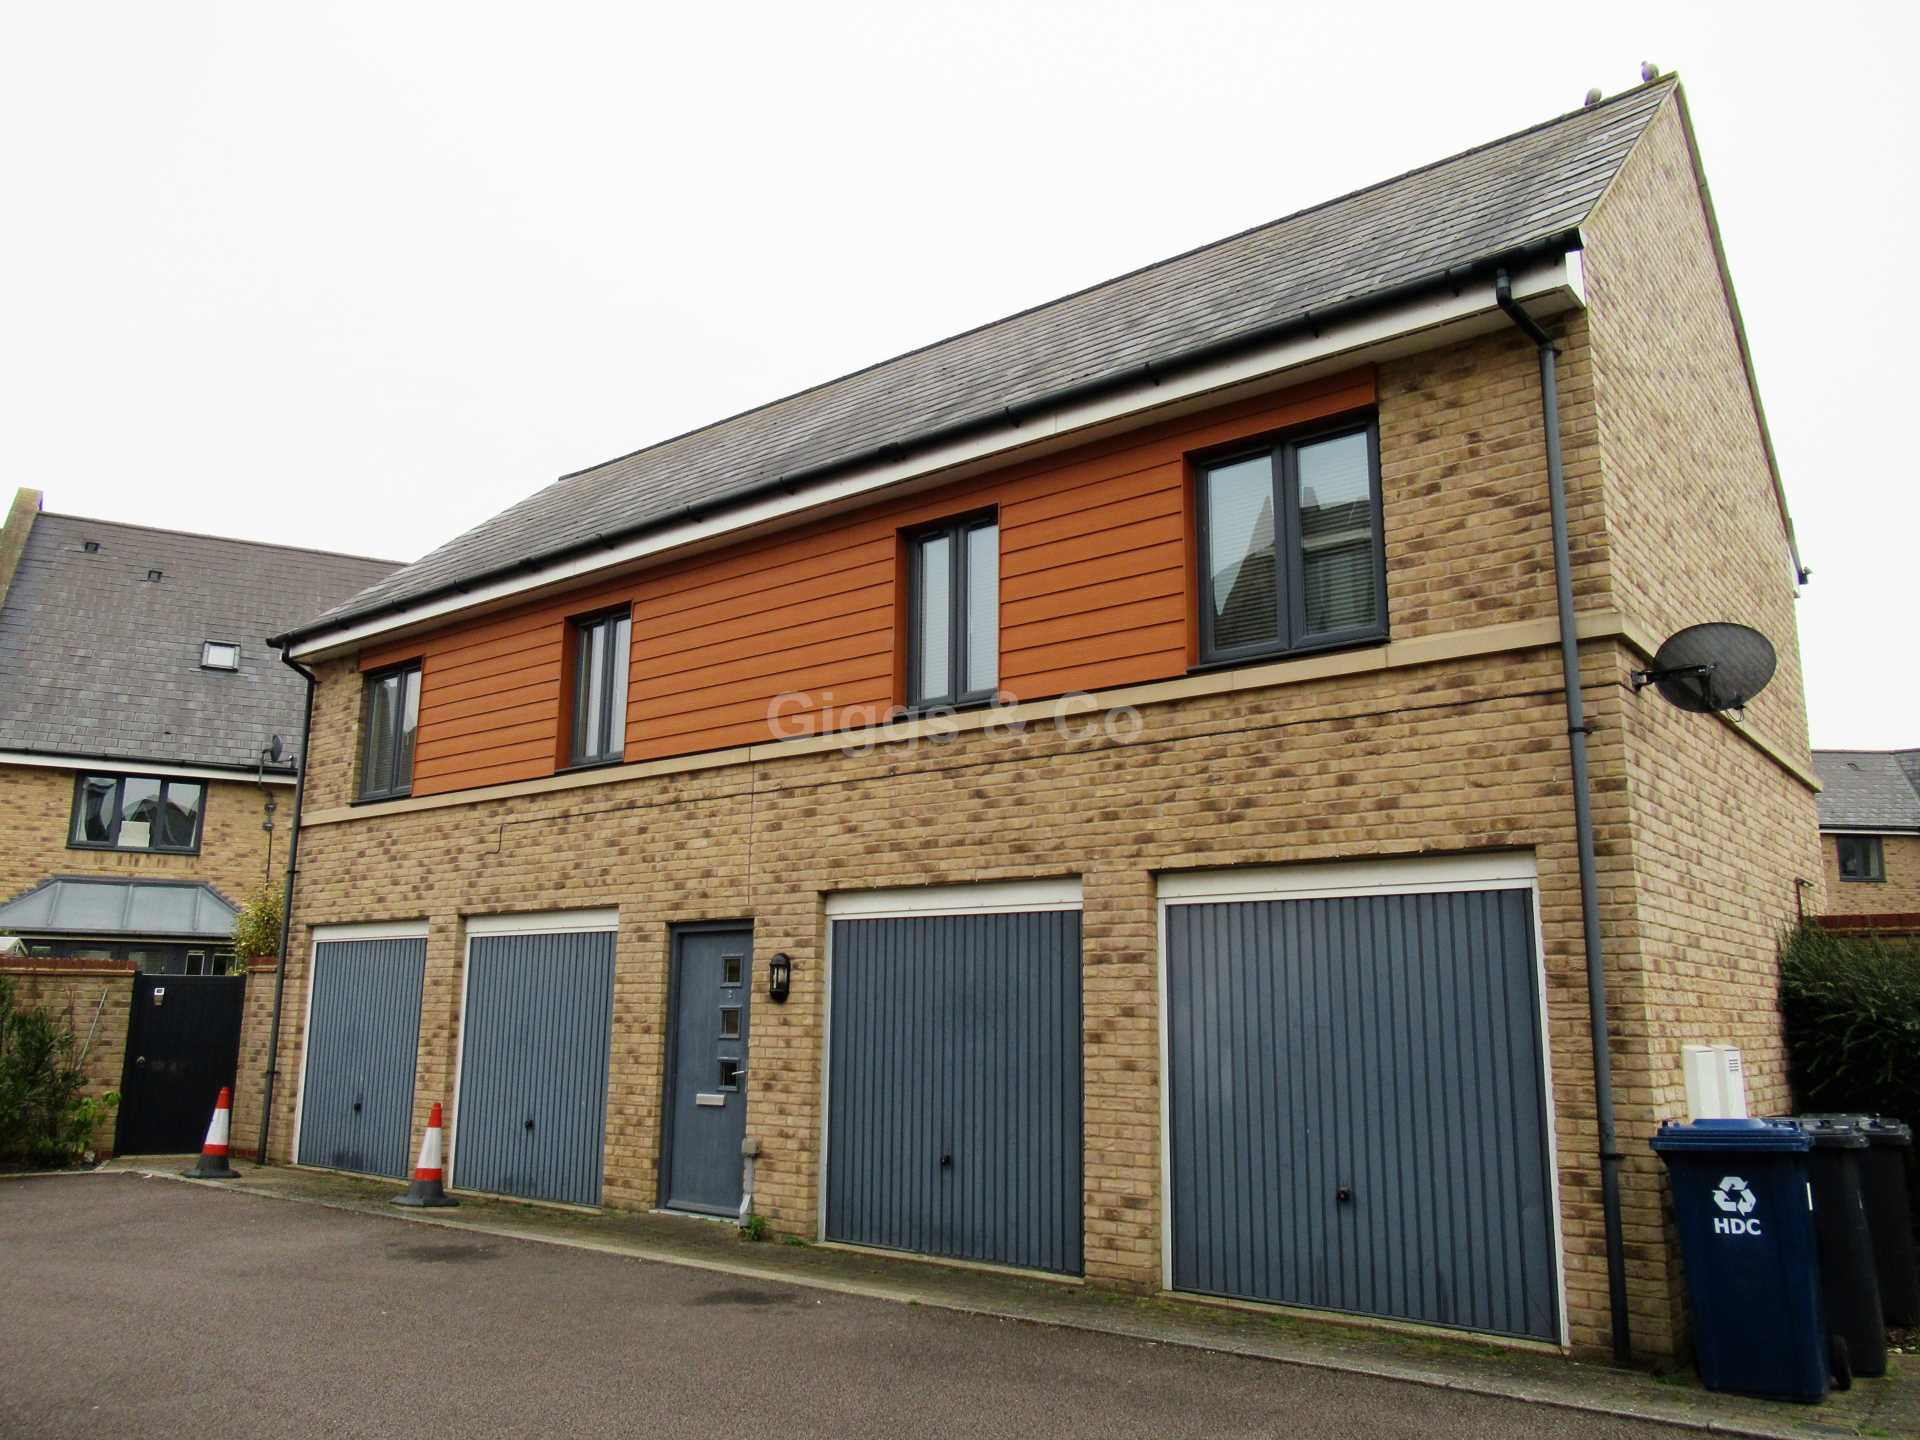 2 bed detached house to rent in The Warren, St Neots - Property Image 1